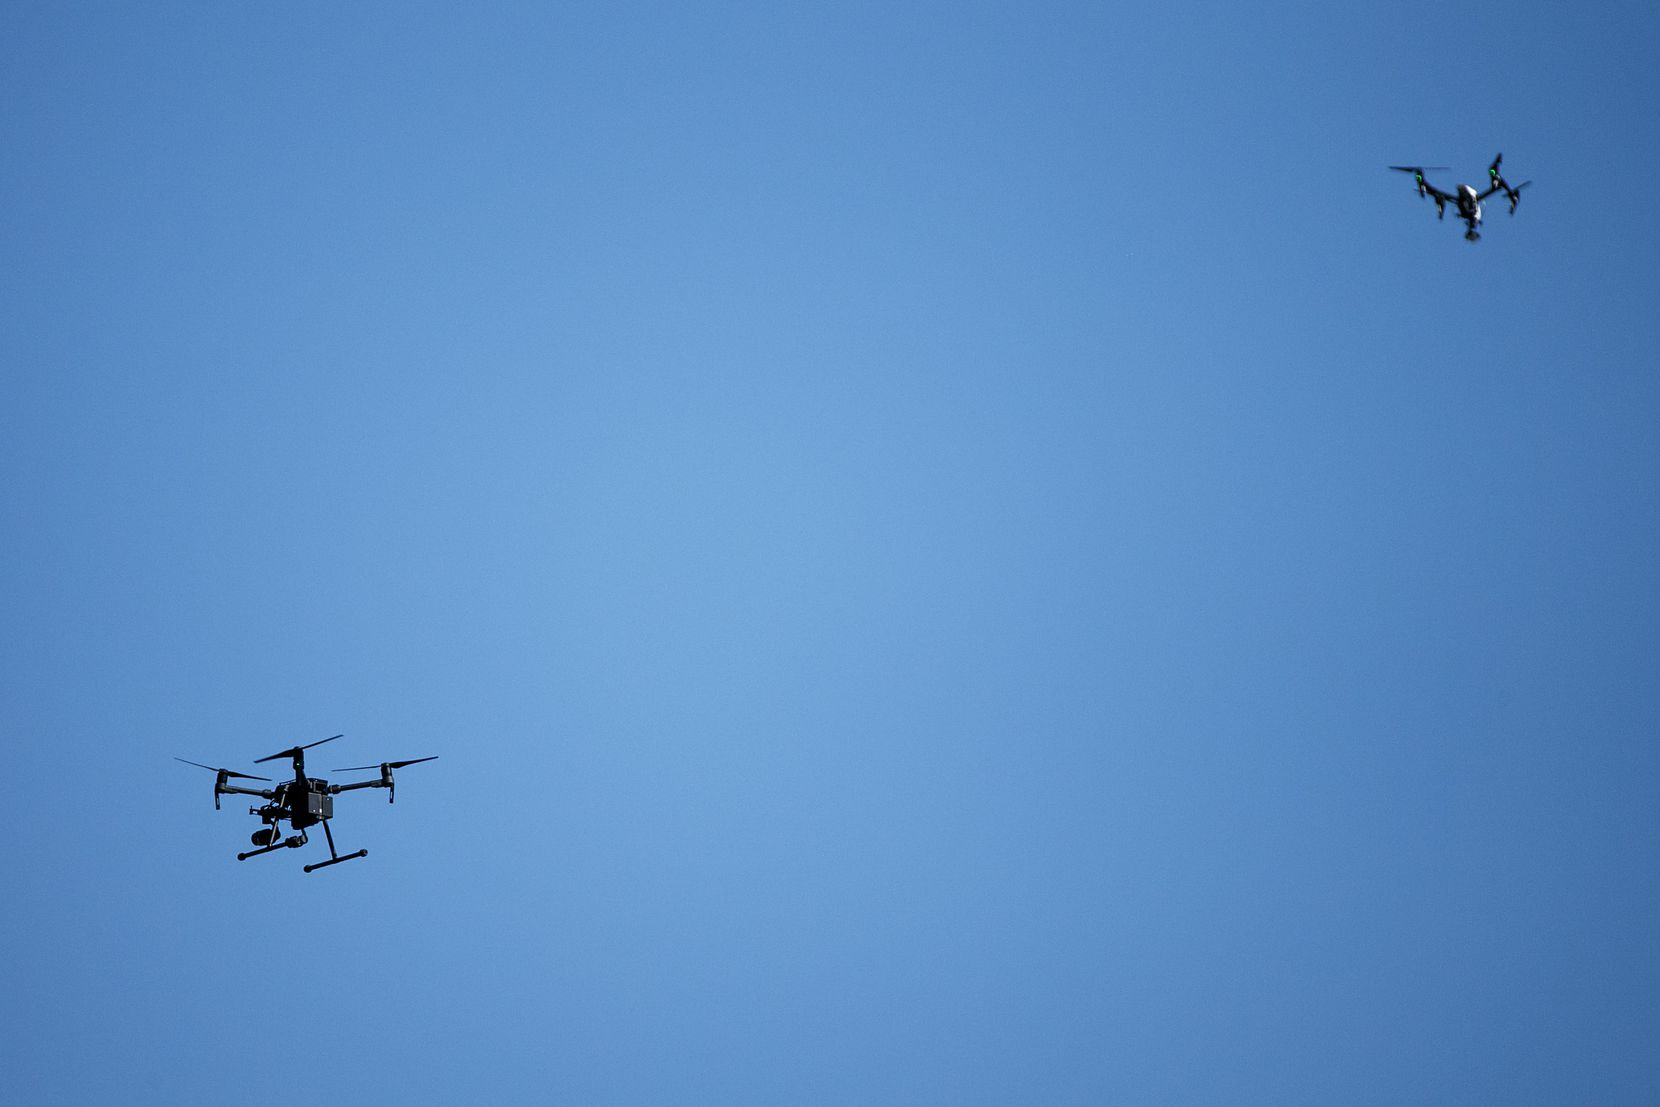 Police used drones to search for Sherin Mathews on the campus of Richland College on Oct. 17.